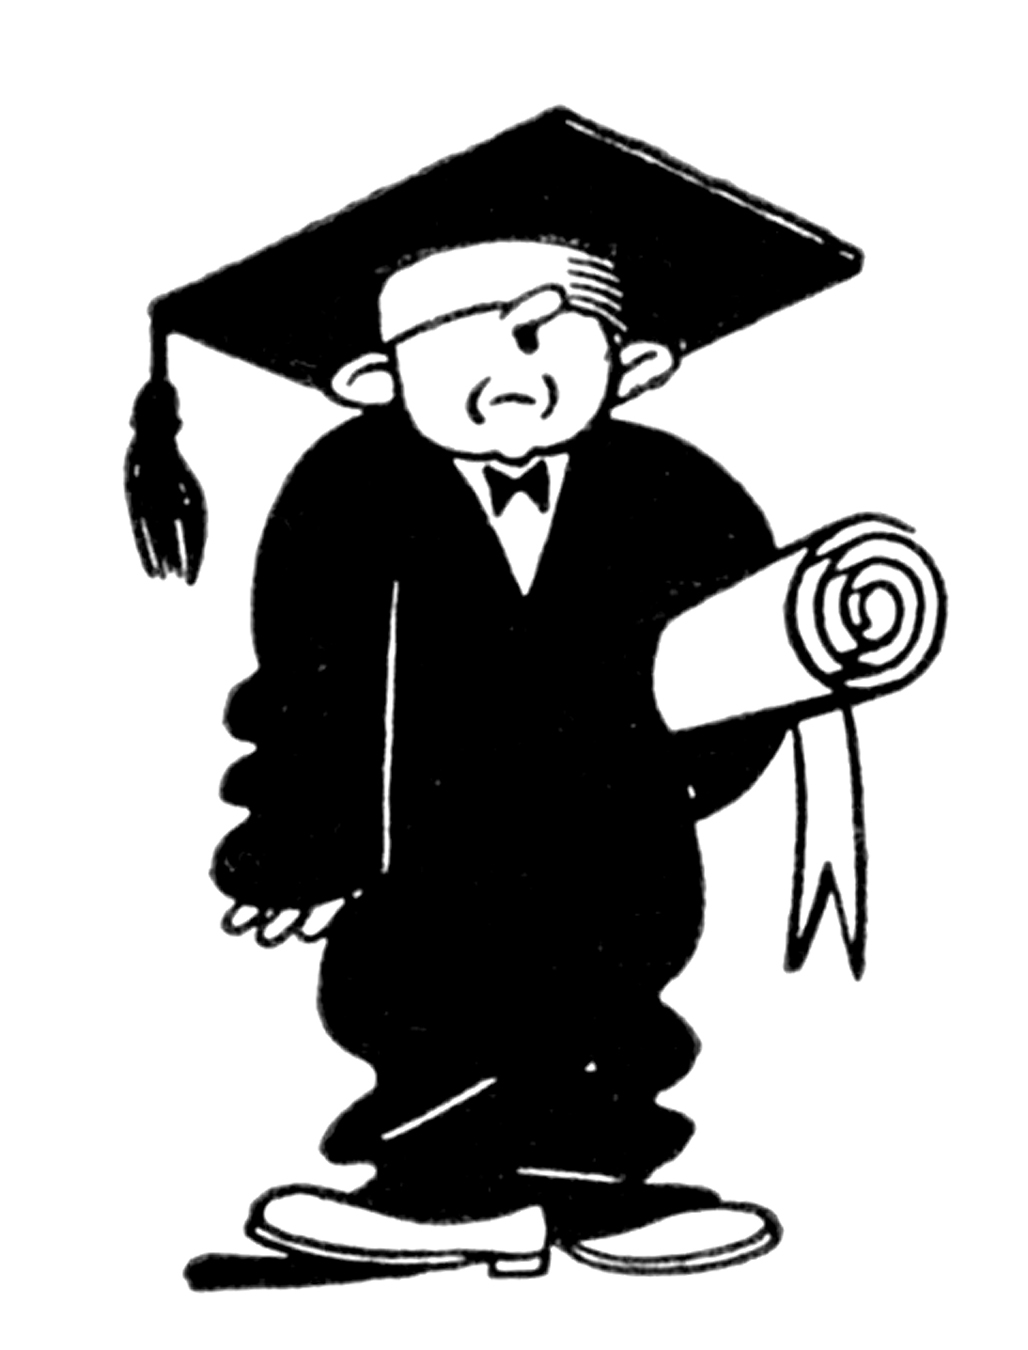 ... High School Counseling; Quirky Retro Graduate Clip Art - Education - The Graphics Fairy ...